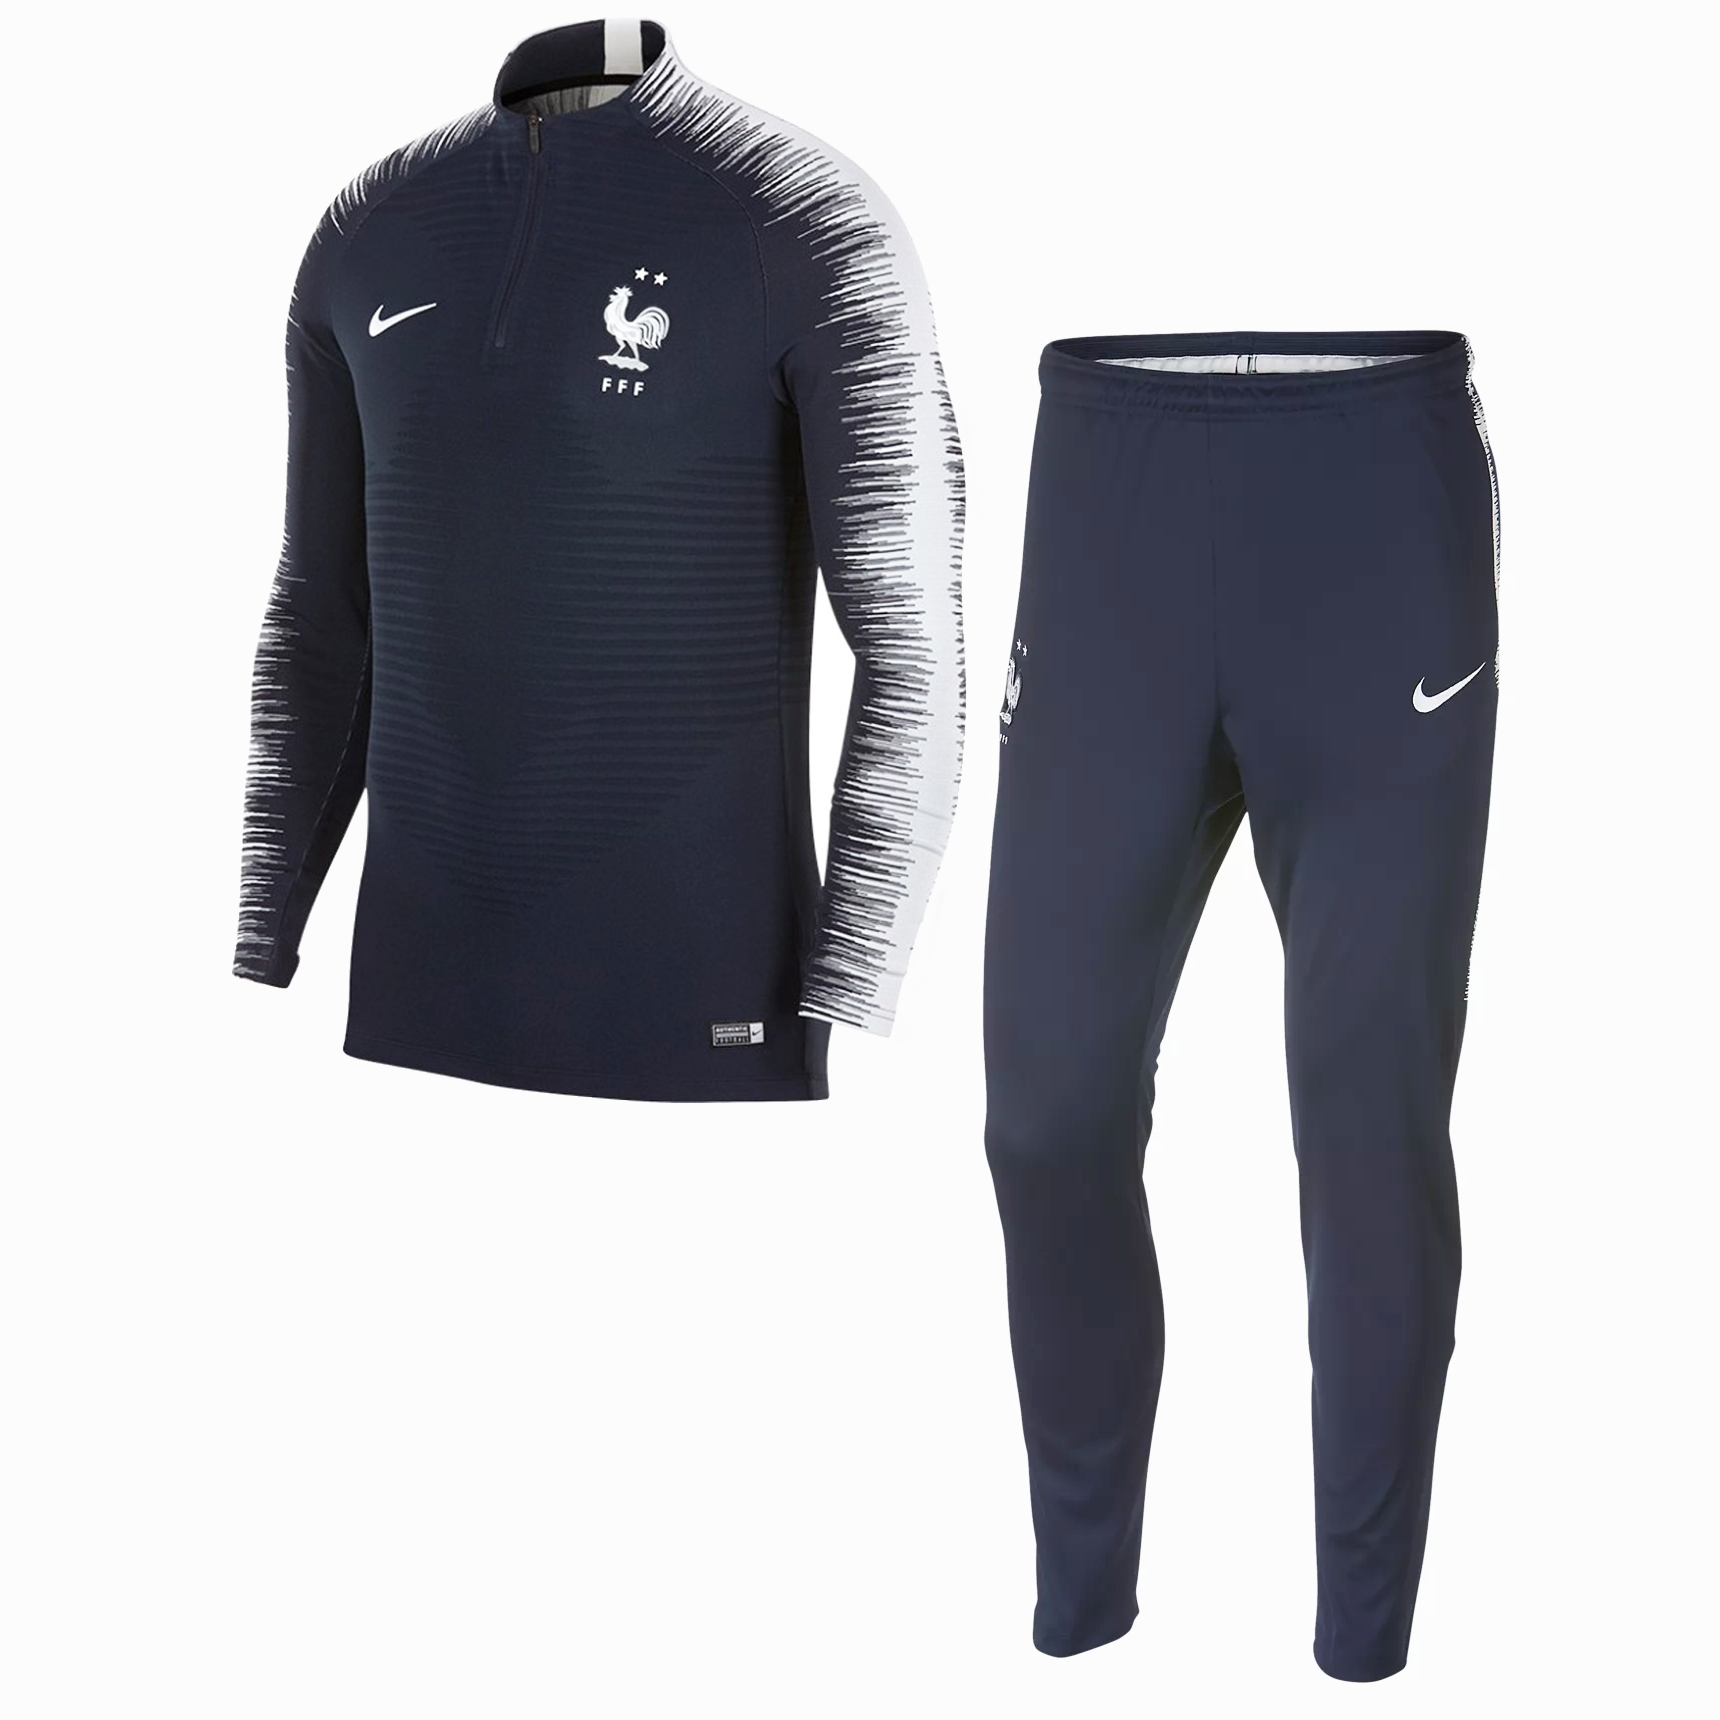 SURVETEMENT FRANCE JUNIOR (2 ÉTOILES) 2018/2019 SOCCER CENTER